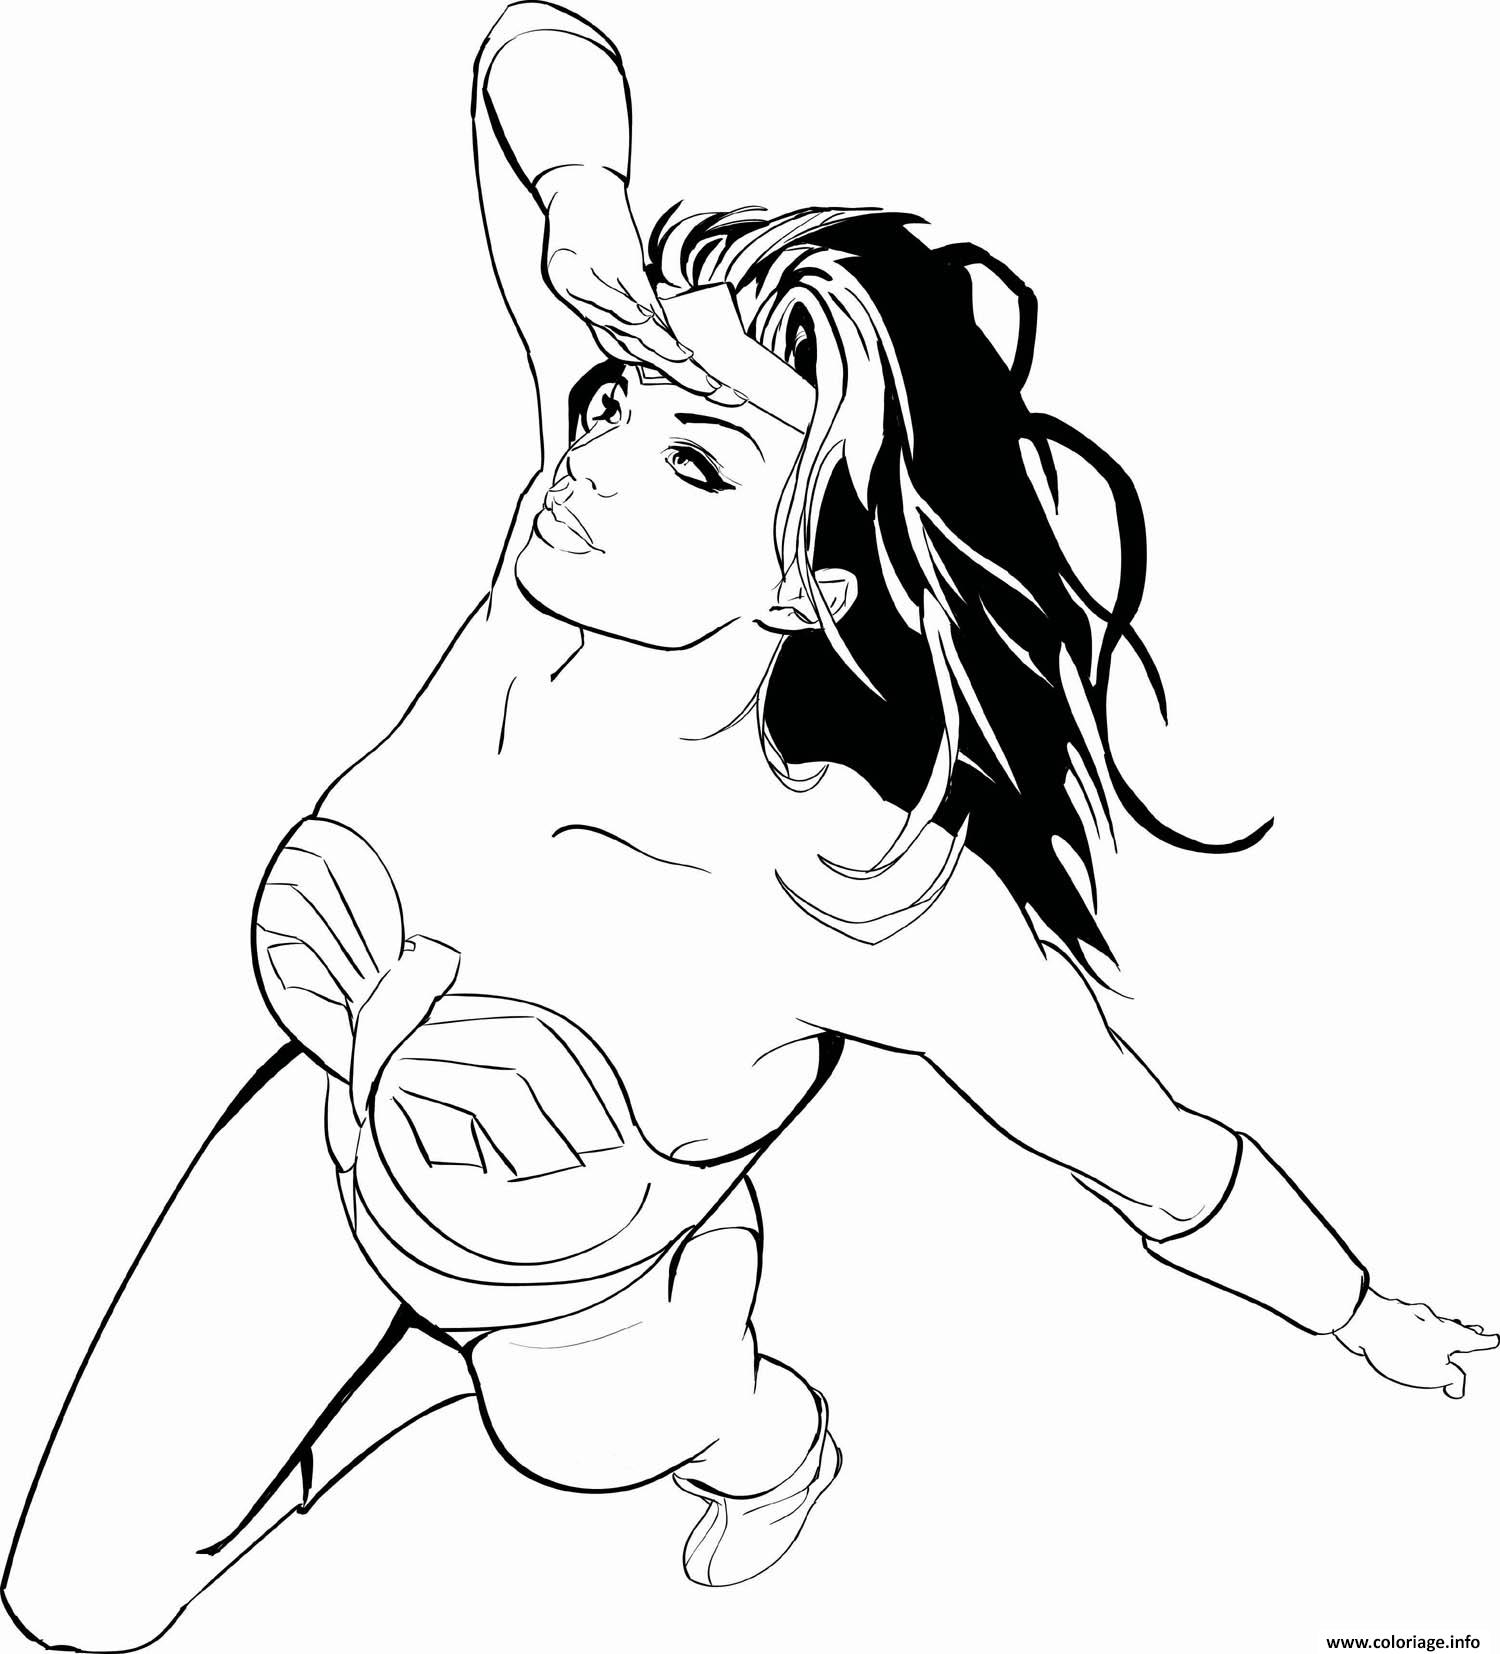 Dessin wonder woman is looking pour superman adulte dc comics Coloriage Gratuit à Imprimer